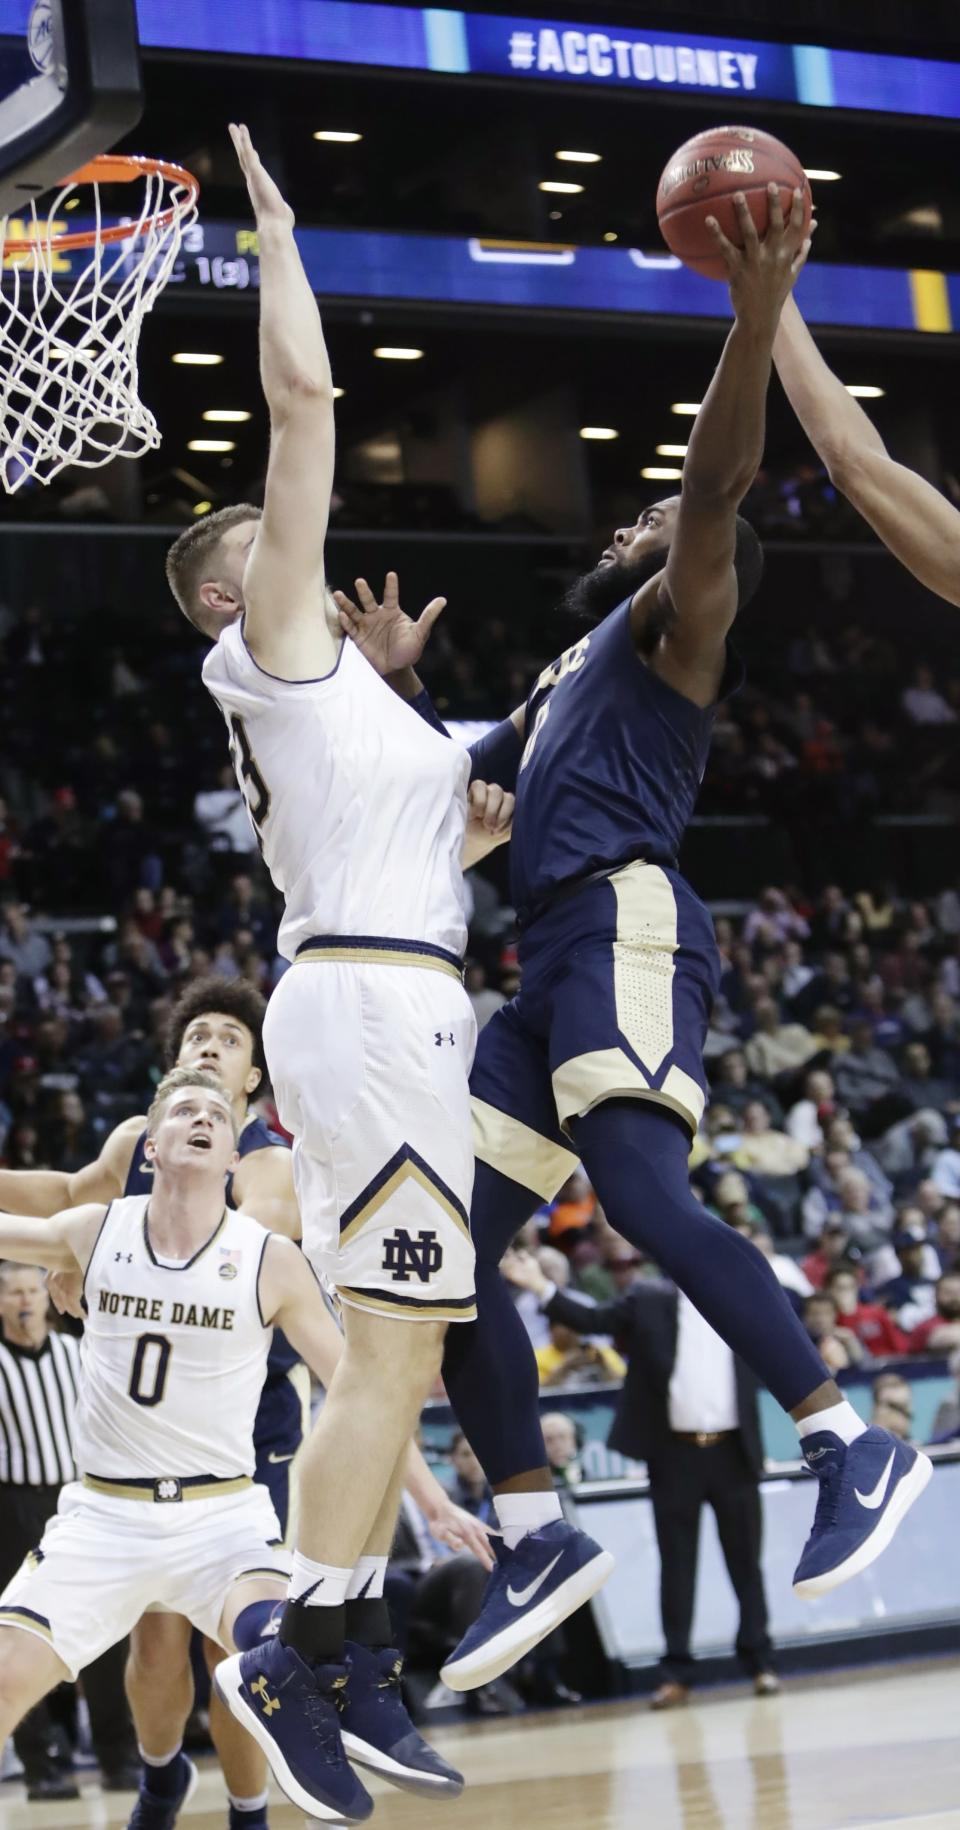 Pittsburgh's Jared Wilson-Frame (0) shoots over Notre Dame's Martinas Geben (23) during the first half of an NCAA college basketball game in the first round of the Atlantic Coast Conference tournament Tuesday, March 6, 2018, in New York. (AP Photo/Frank Franklin II)